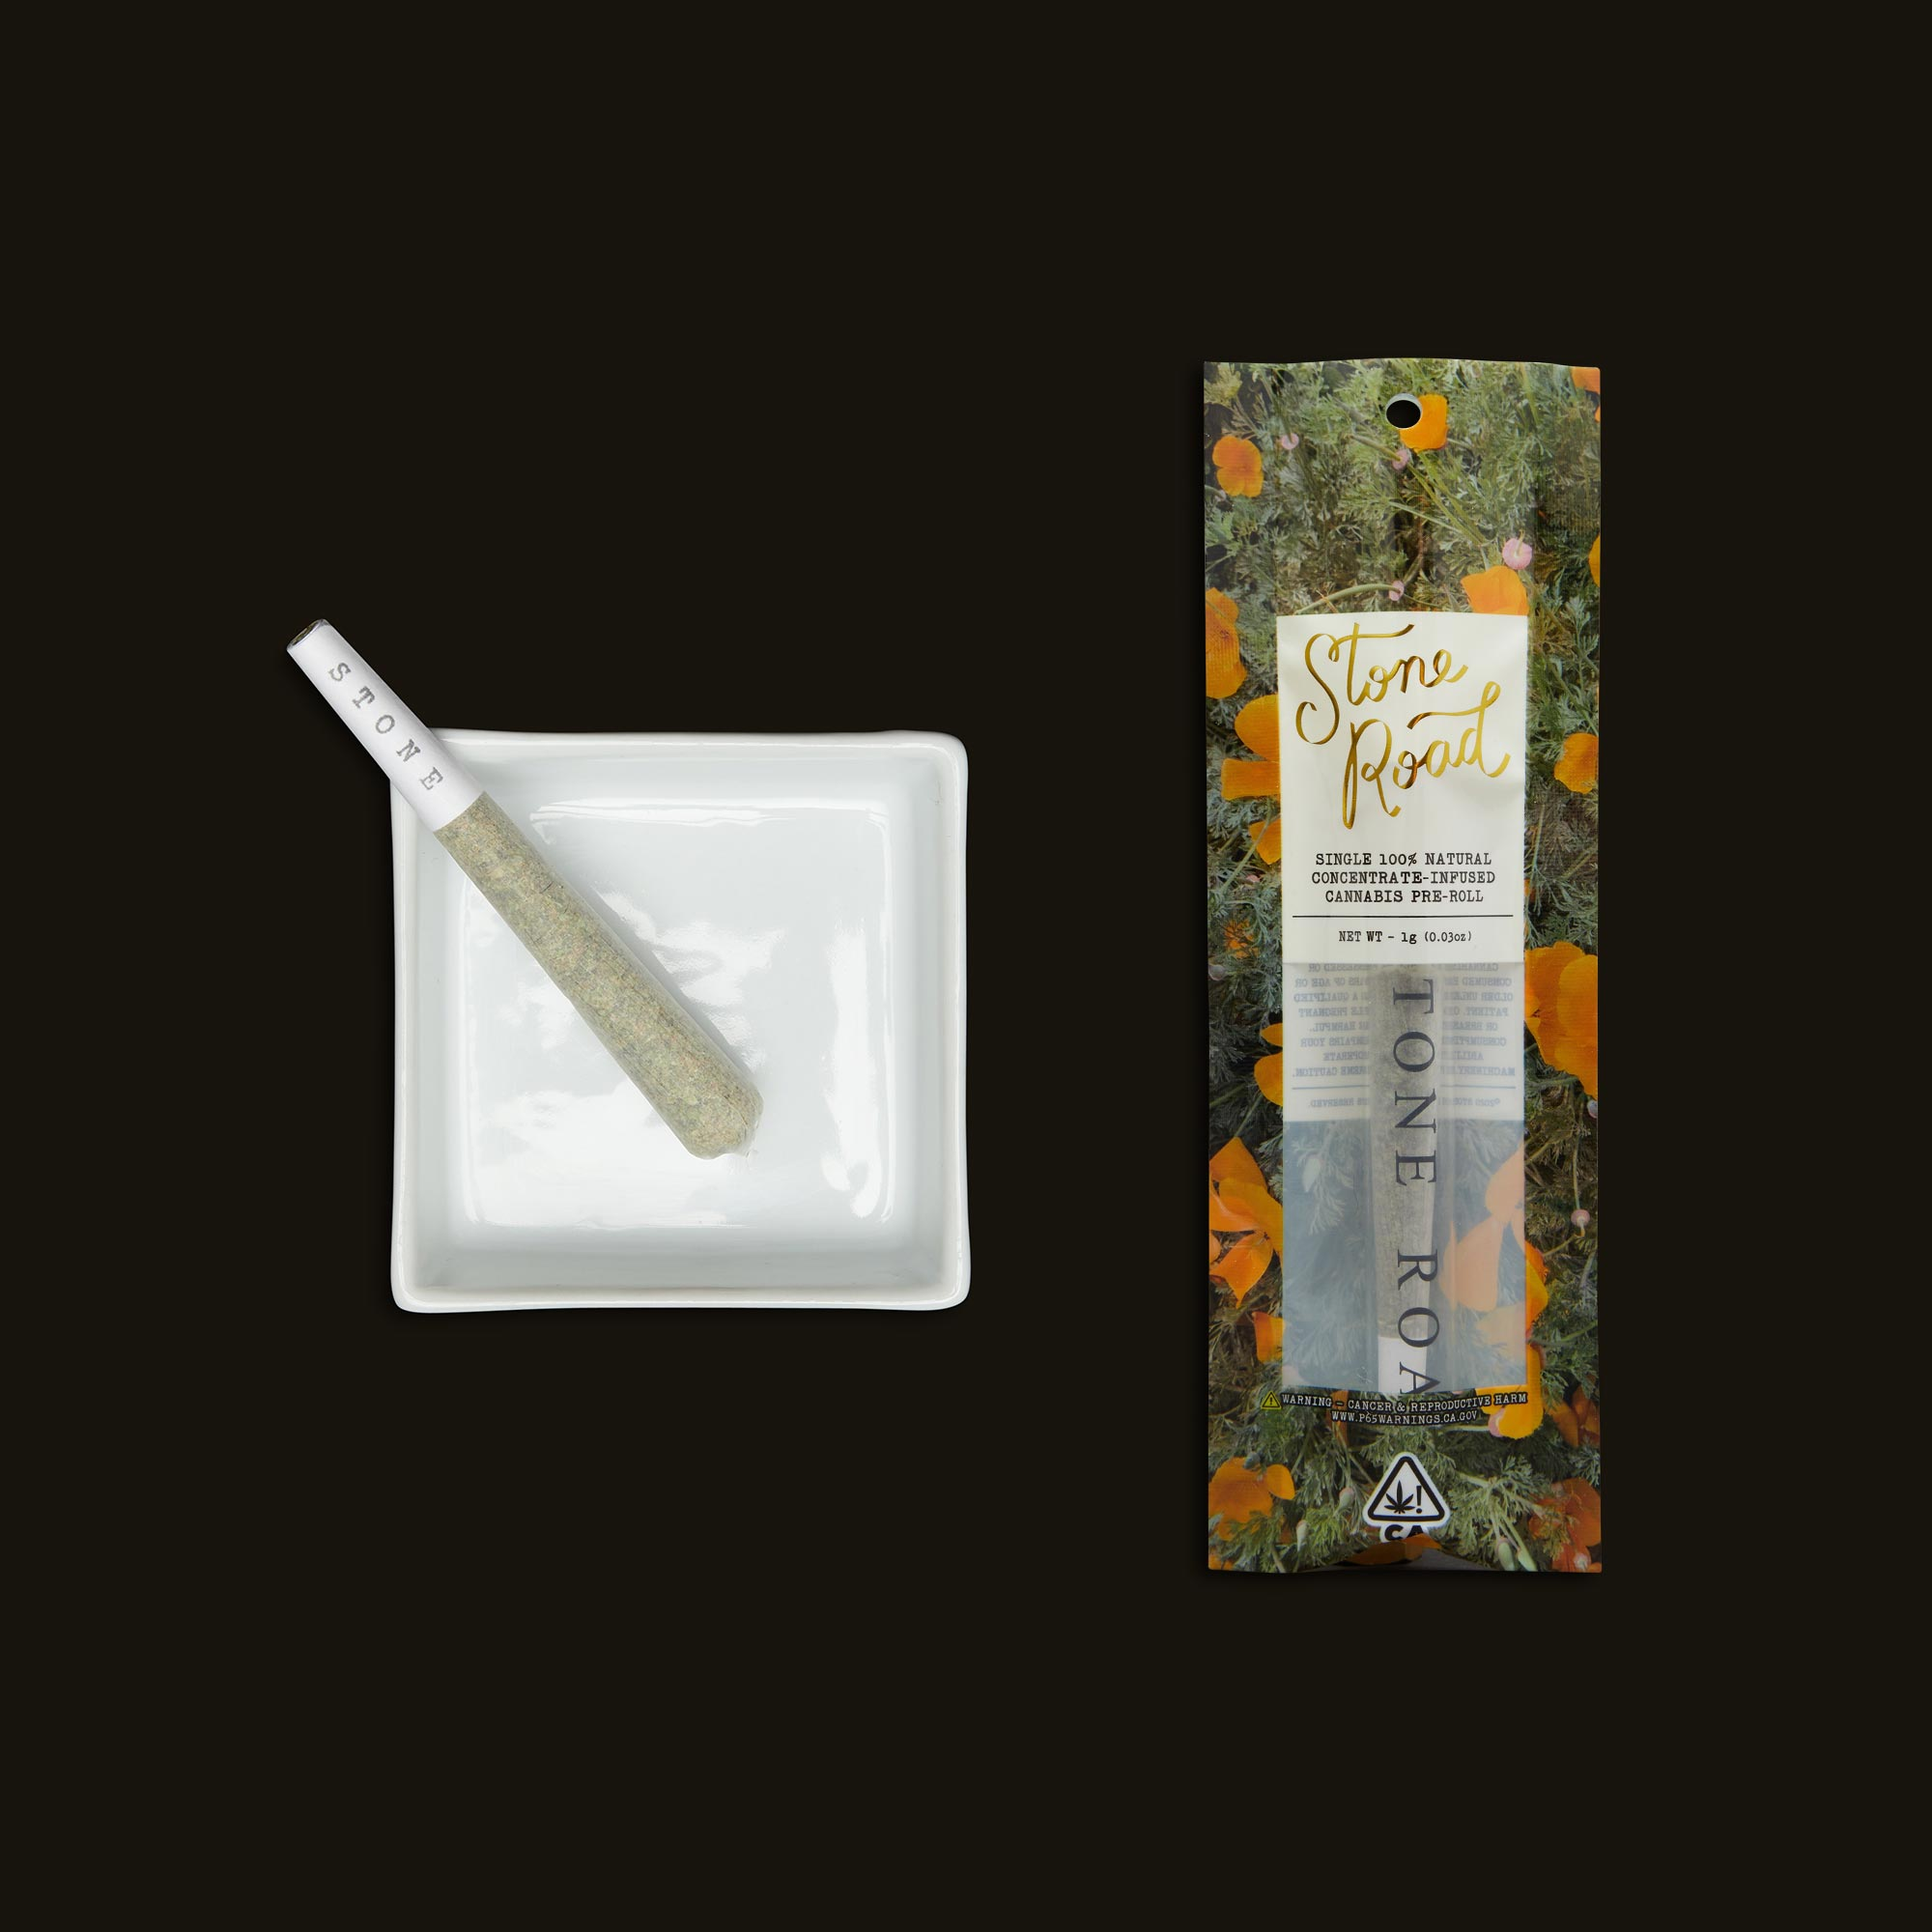 Stone Road Papaya Punch Infused Pre-Roll